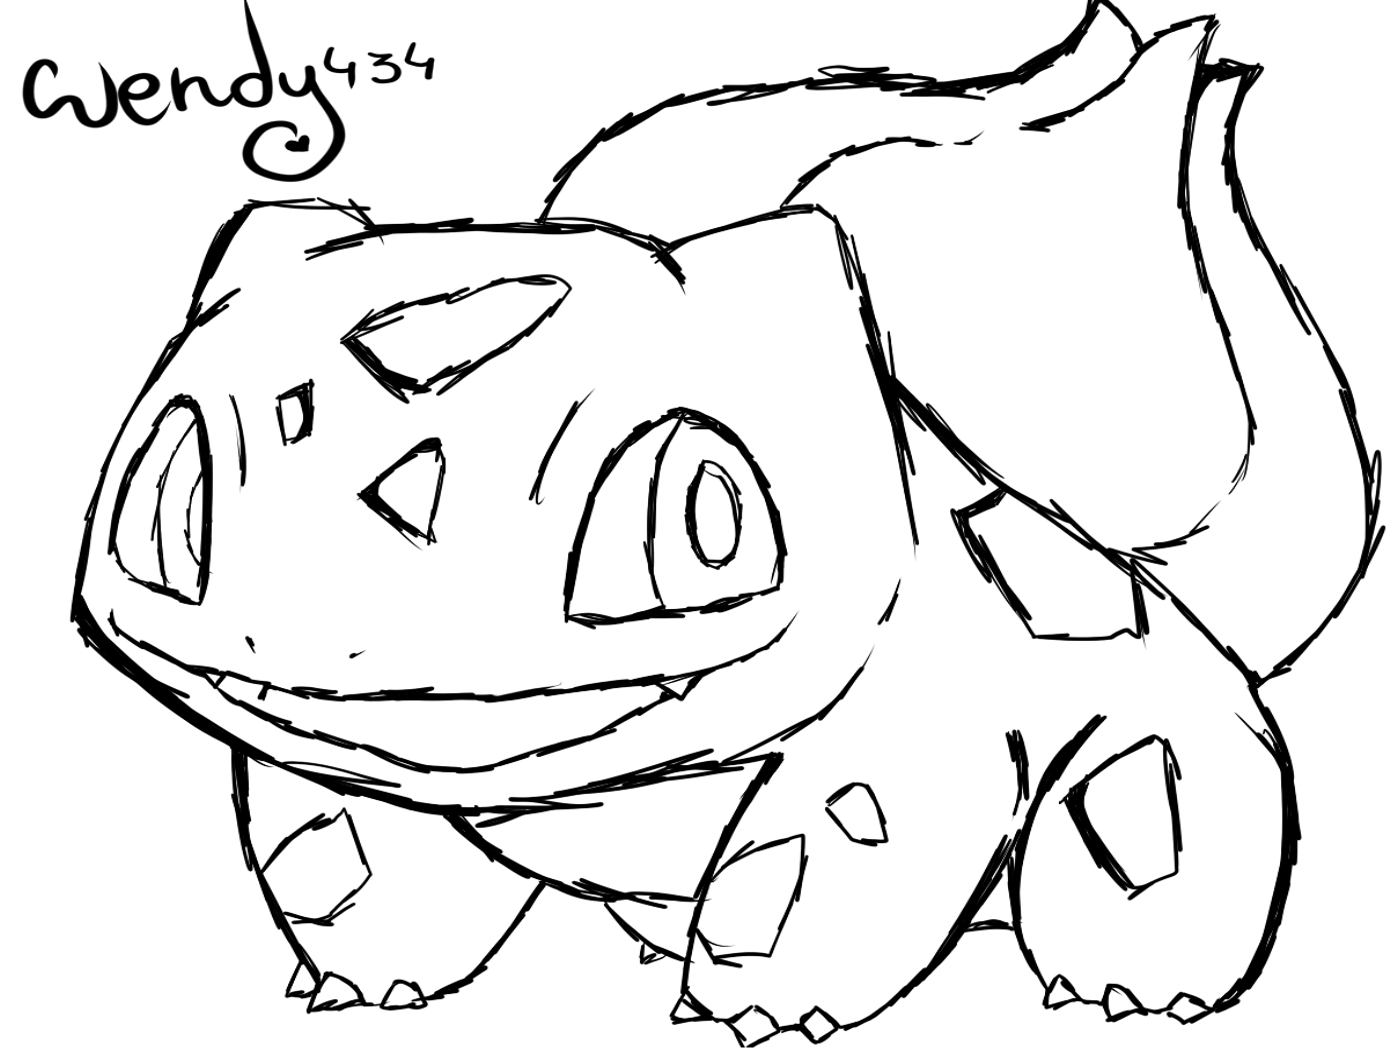 pokemon ivysaur coloring pages images pokemon images Pokemon Squirtle Coloring Pages  Bulbasaur Pokemon Coloring Pages